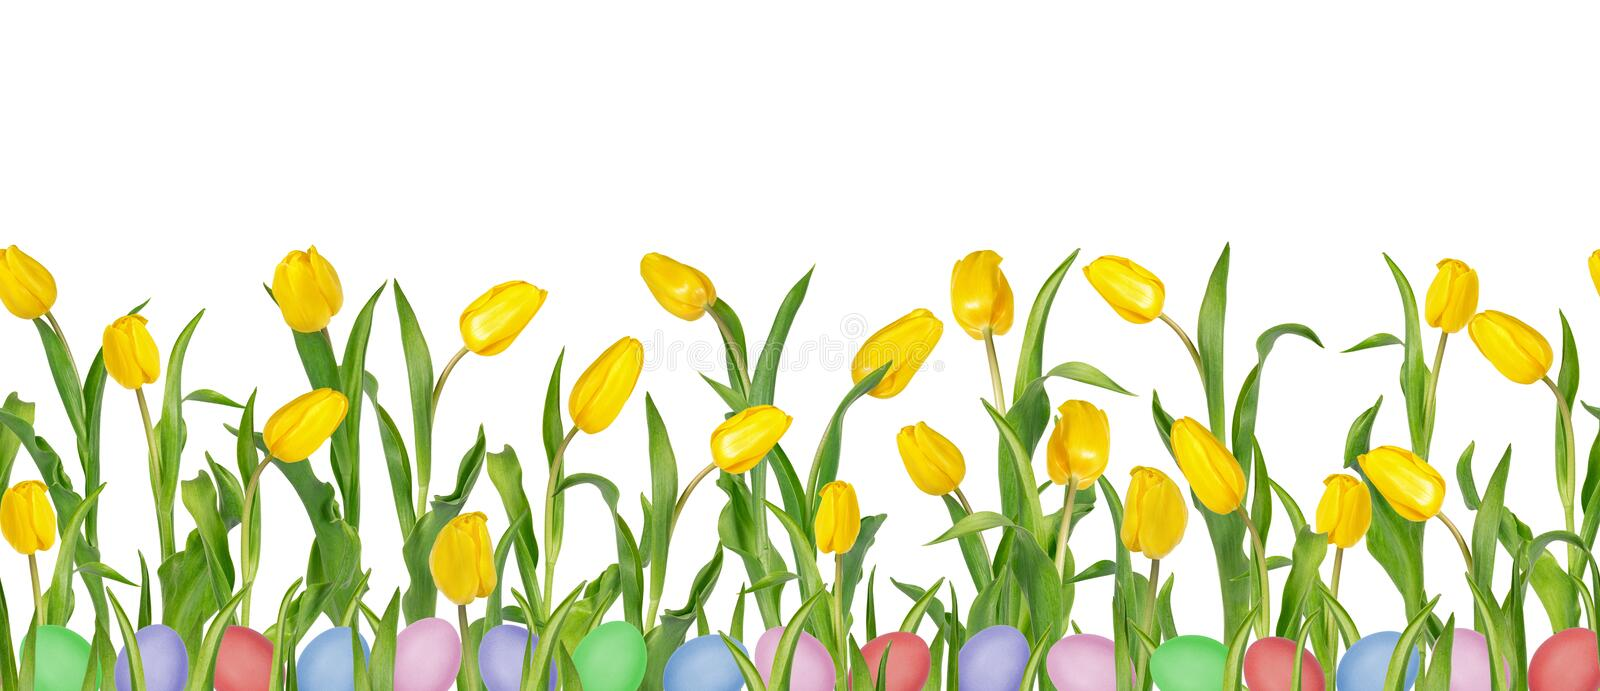 Beautiful vivid yellow tulips on long stems with green leaves and colorful Easter eggs in seamless pattern. royalty free stock image